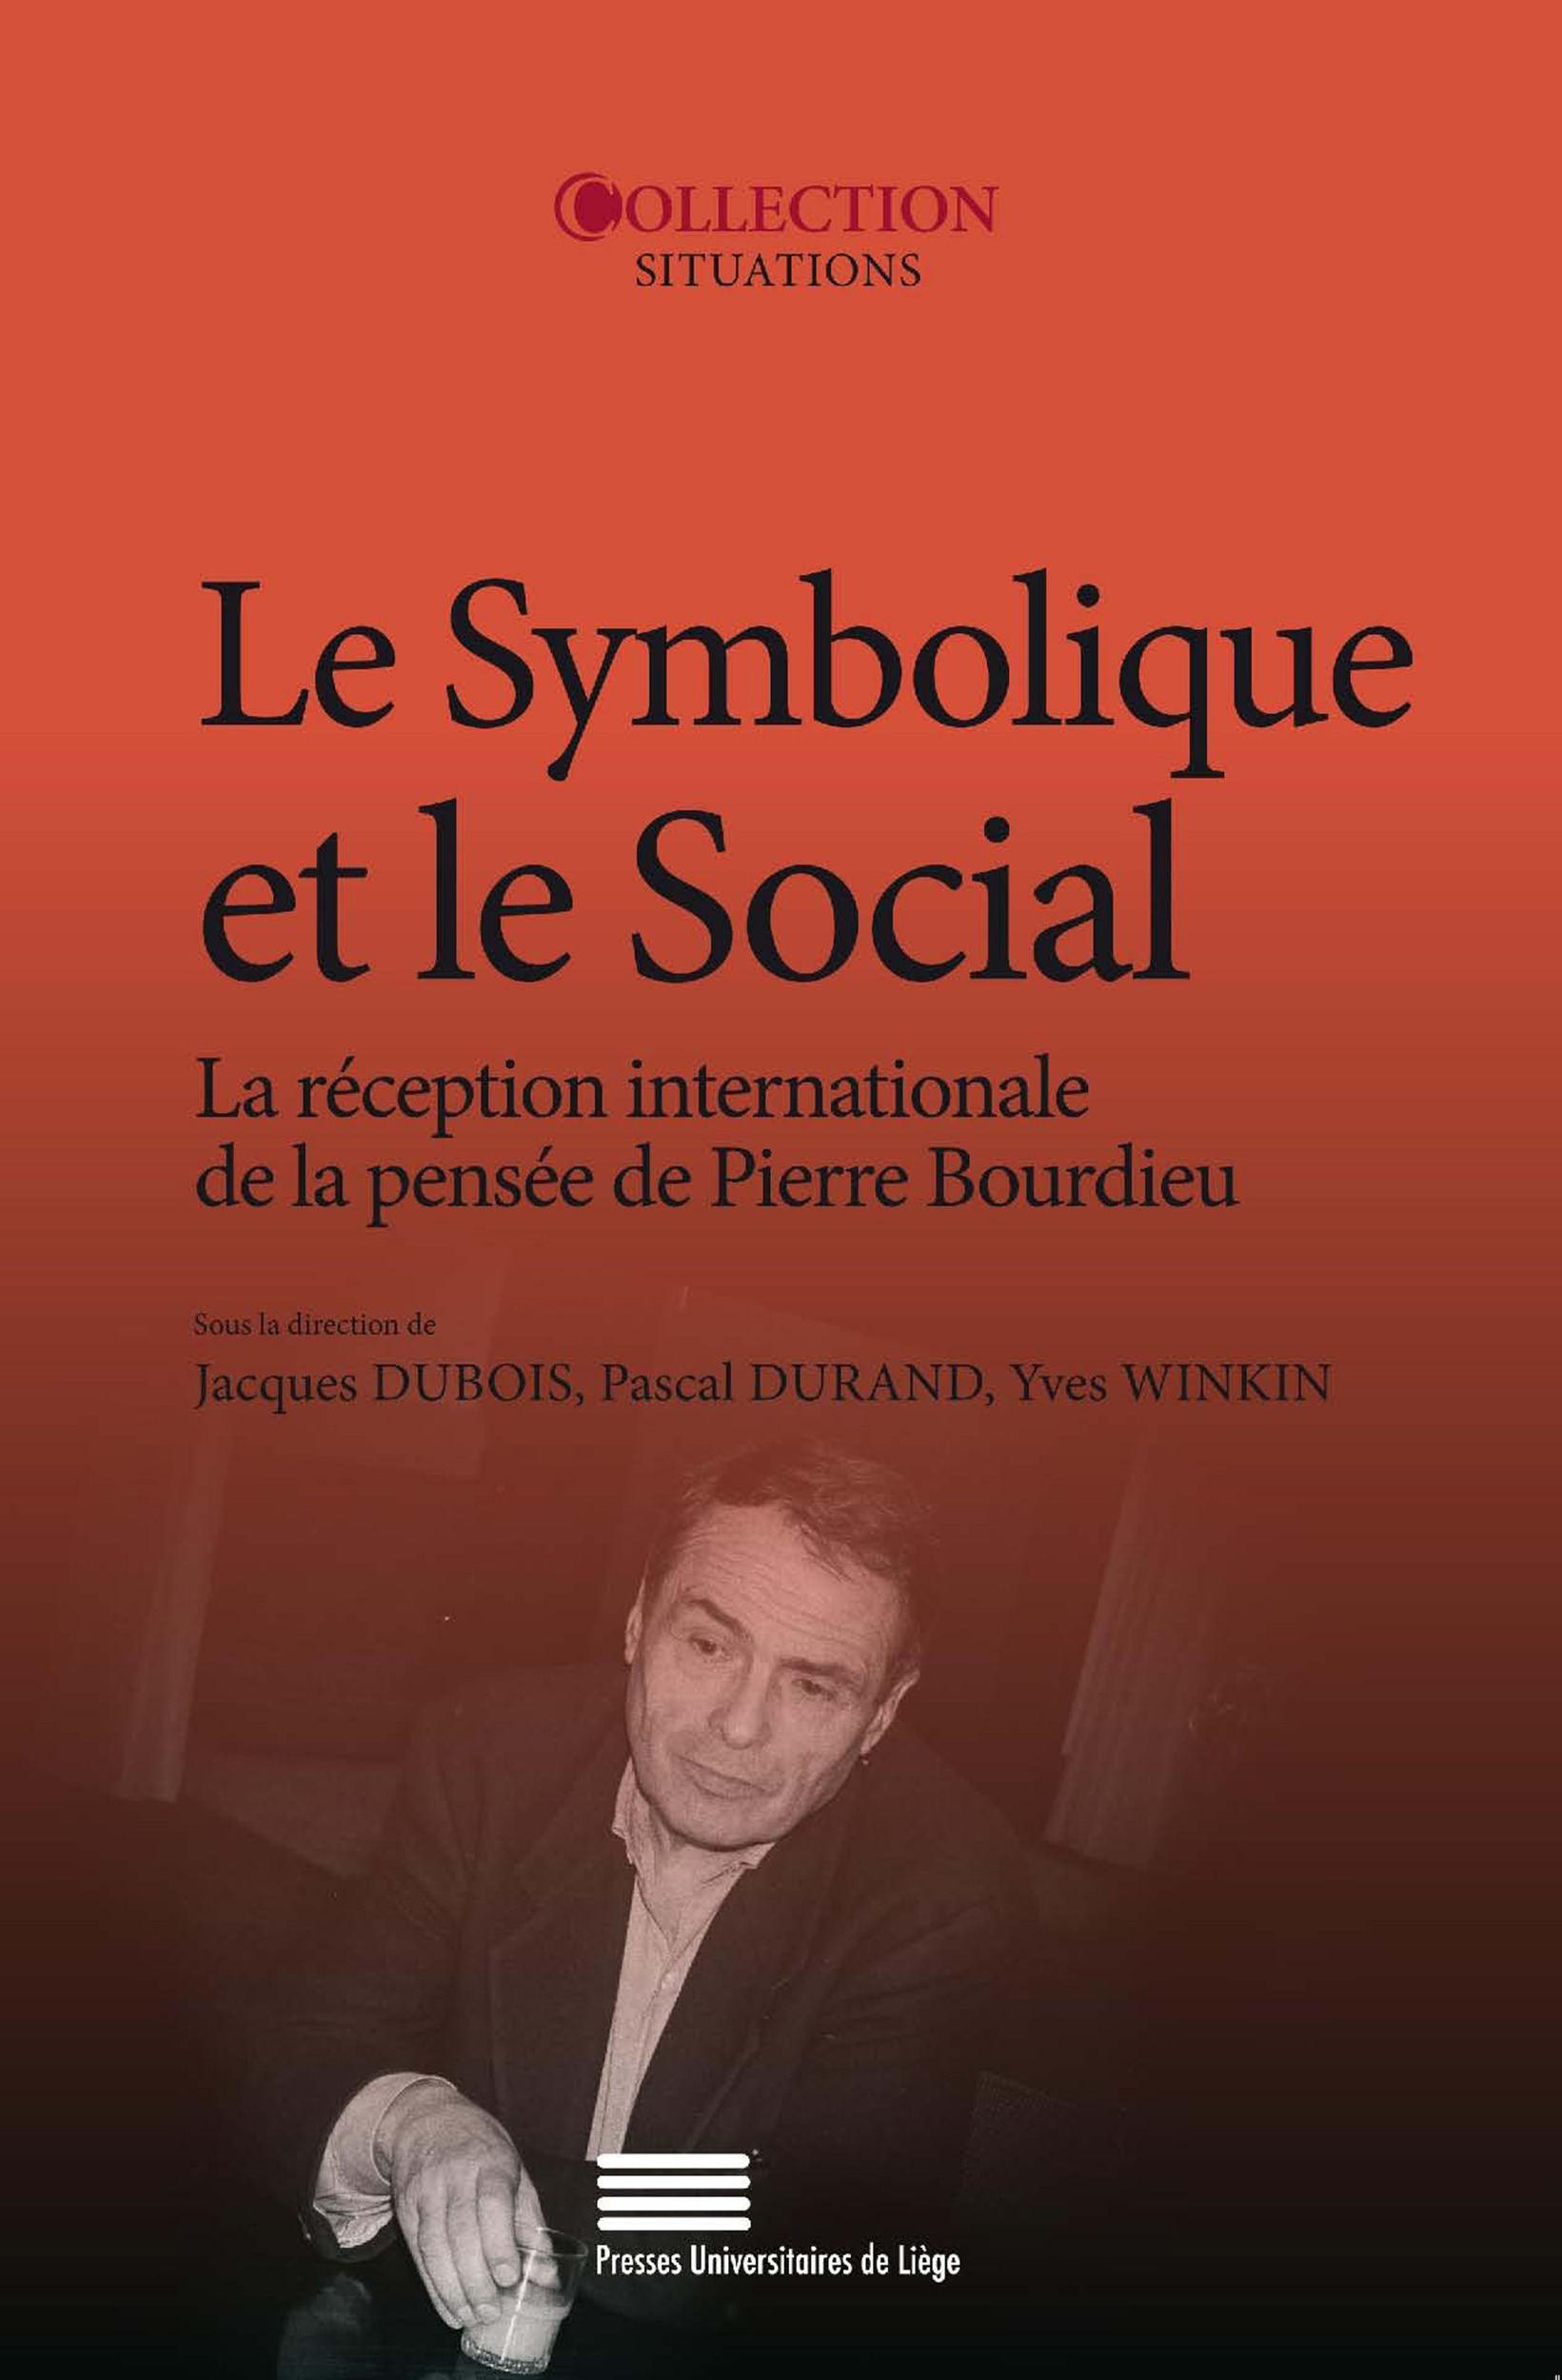 Le symbolique et le social. la reception internationale de la pensee  de pierre bourdieu